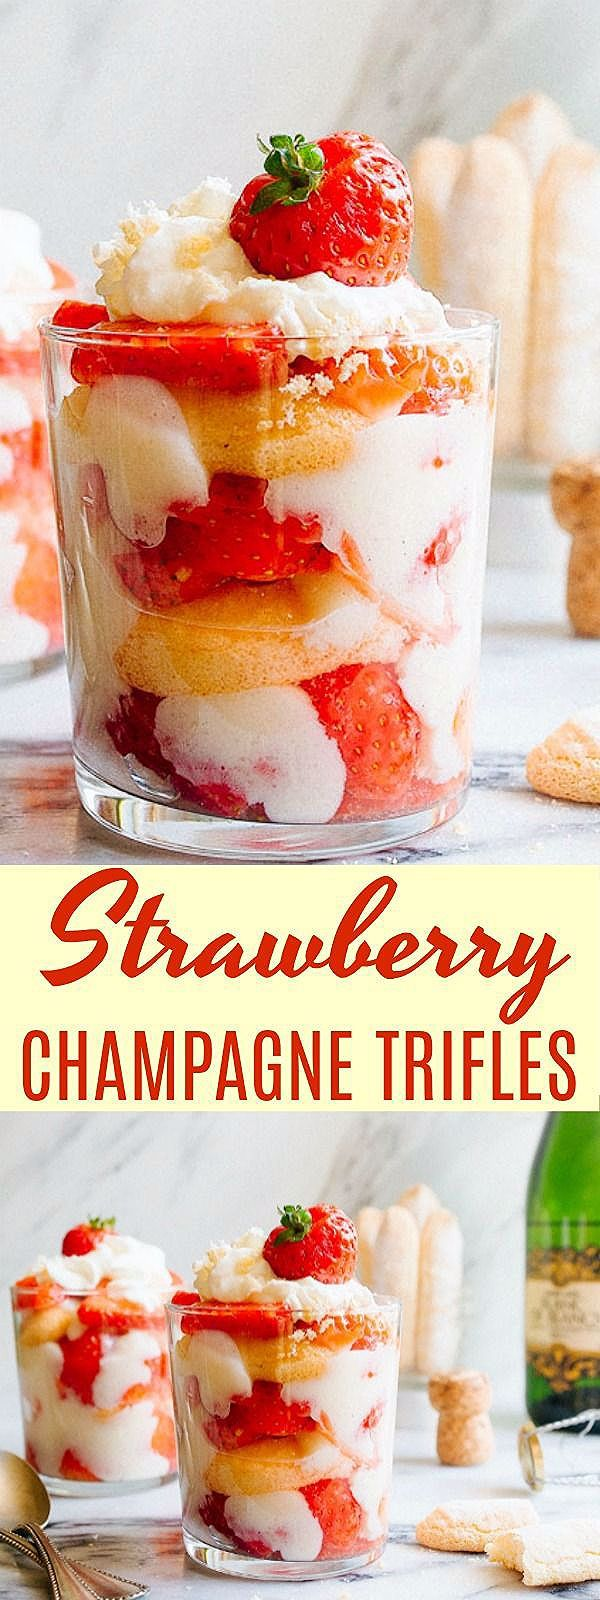 Photo of Strawberry Champagne Trifles for Two | Dessert for Two